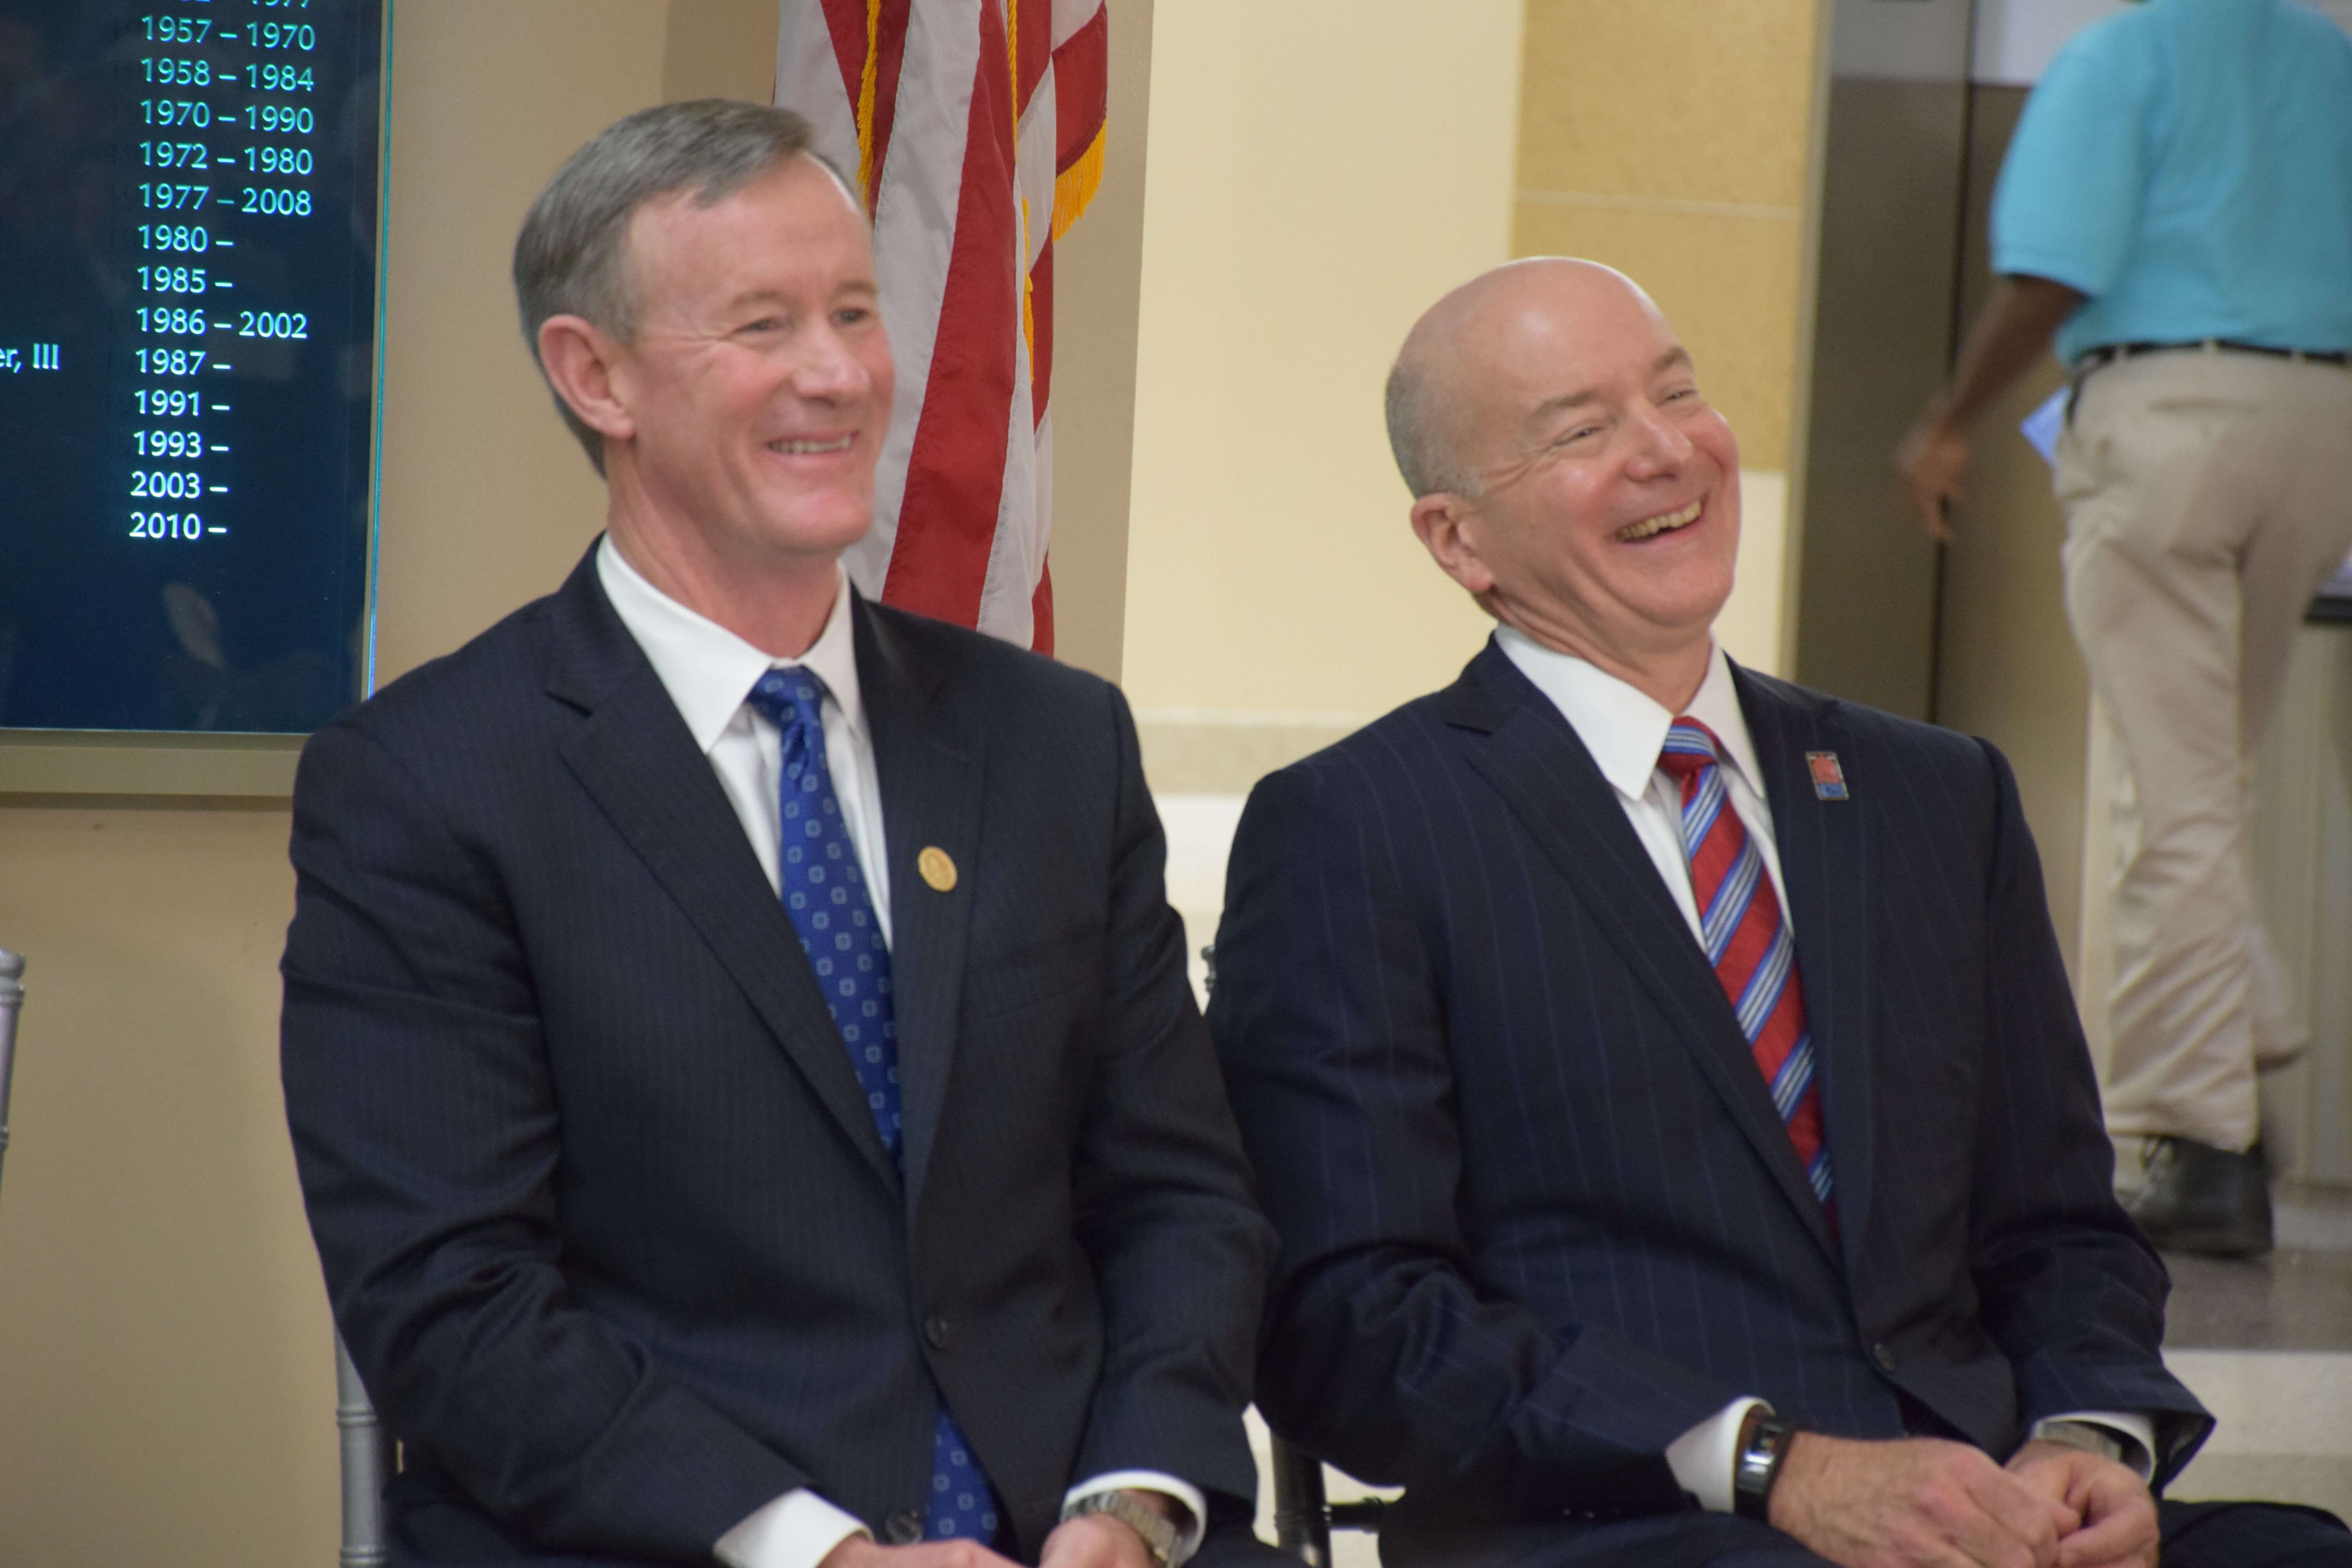 William H. McRaven, chancellor of the UT System and David L. Callender, M.D., president of UTMB, enjoy a laugh at the dedication ceremony for the Jennie Sealy Hospital Feb. 26, 2016. (Credit: UTMB)